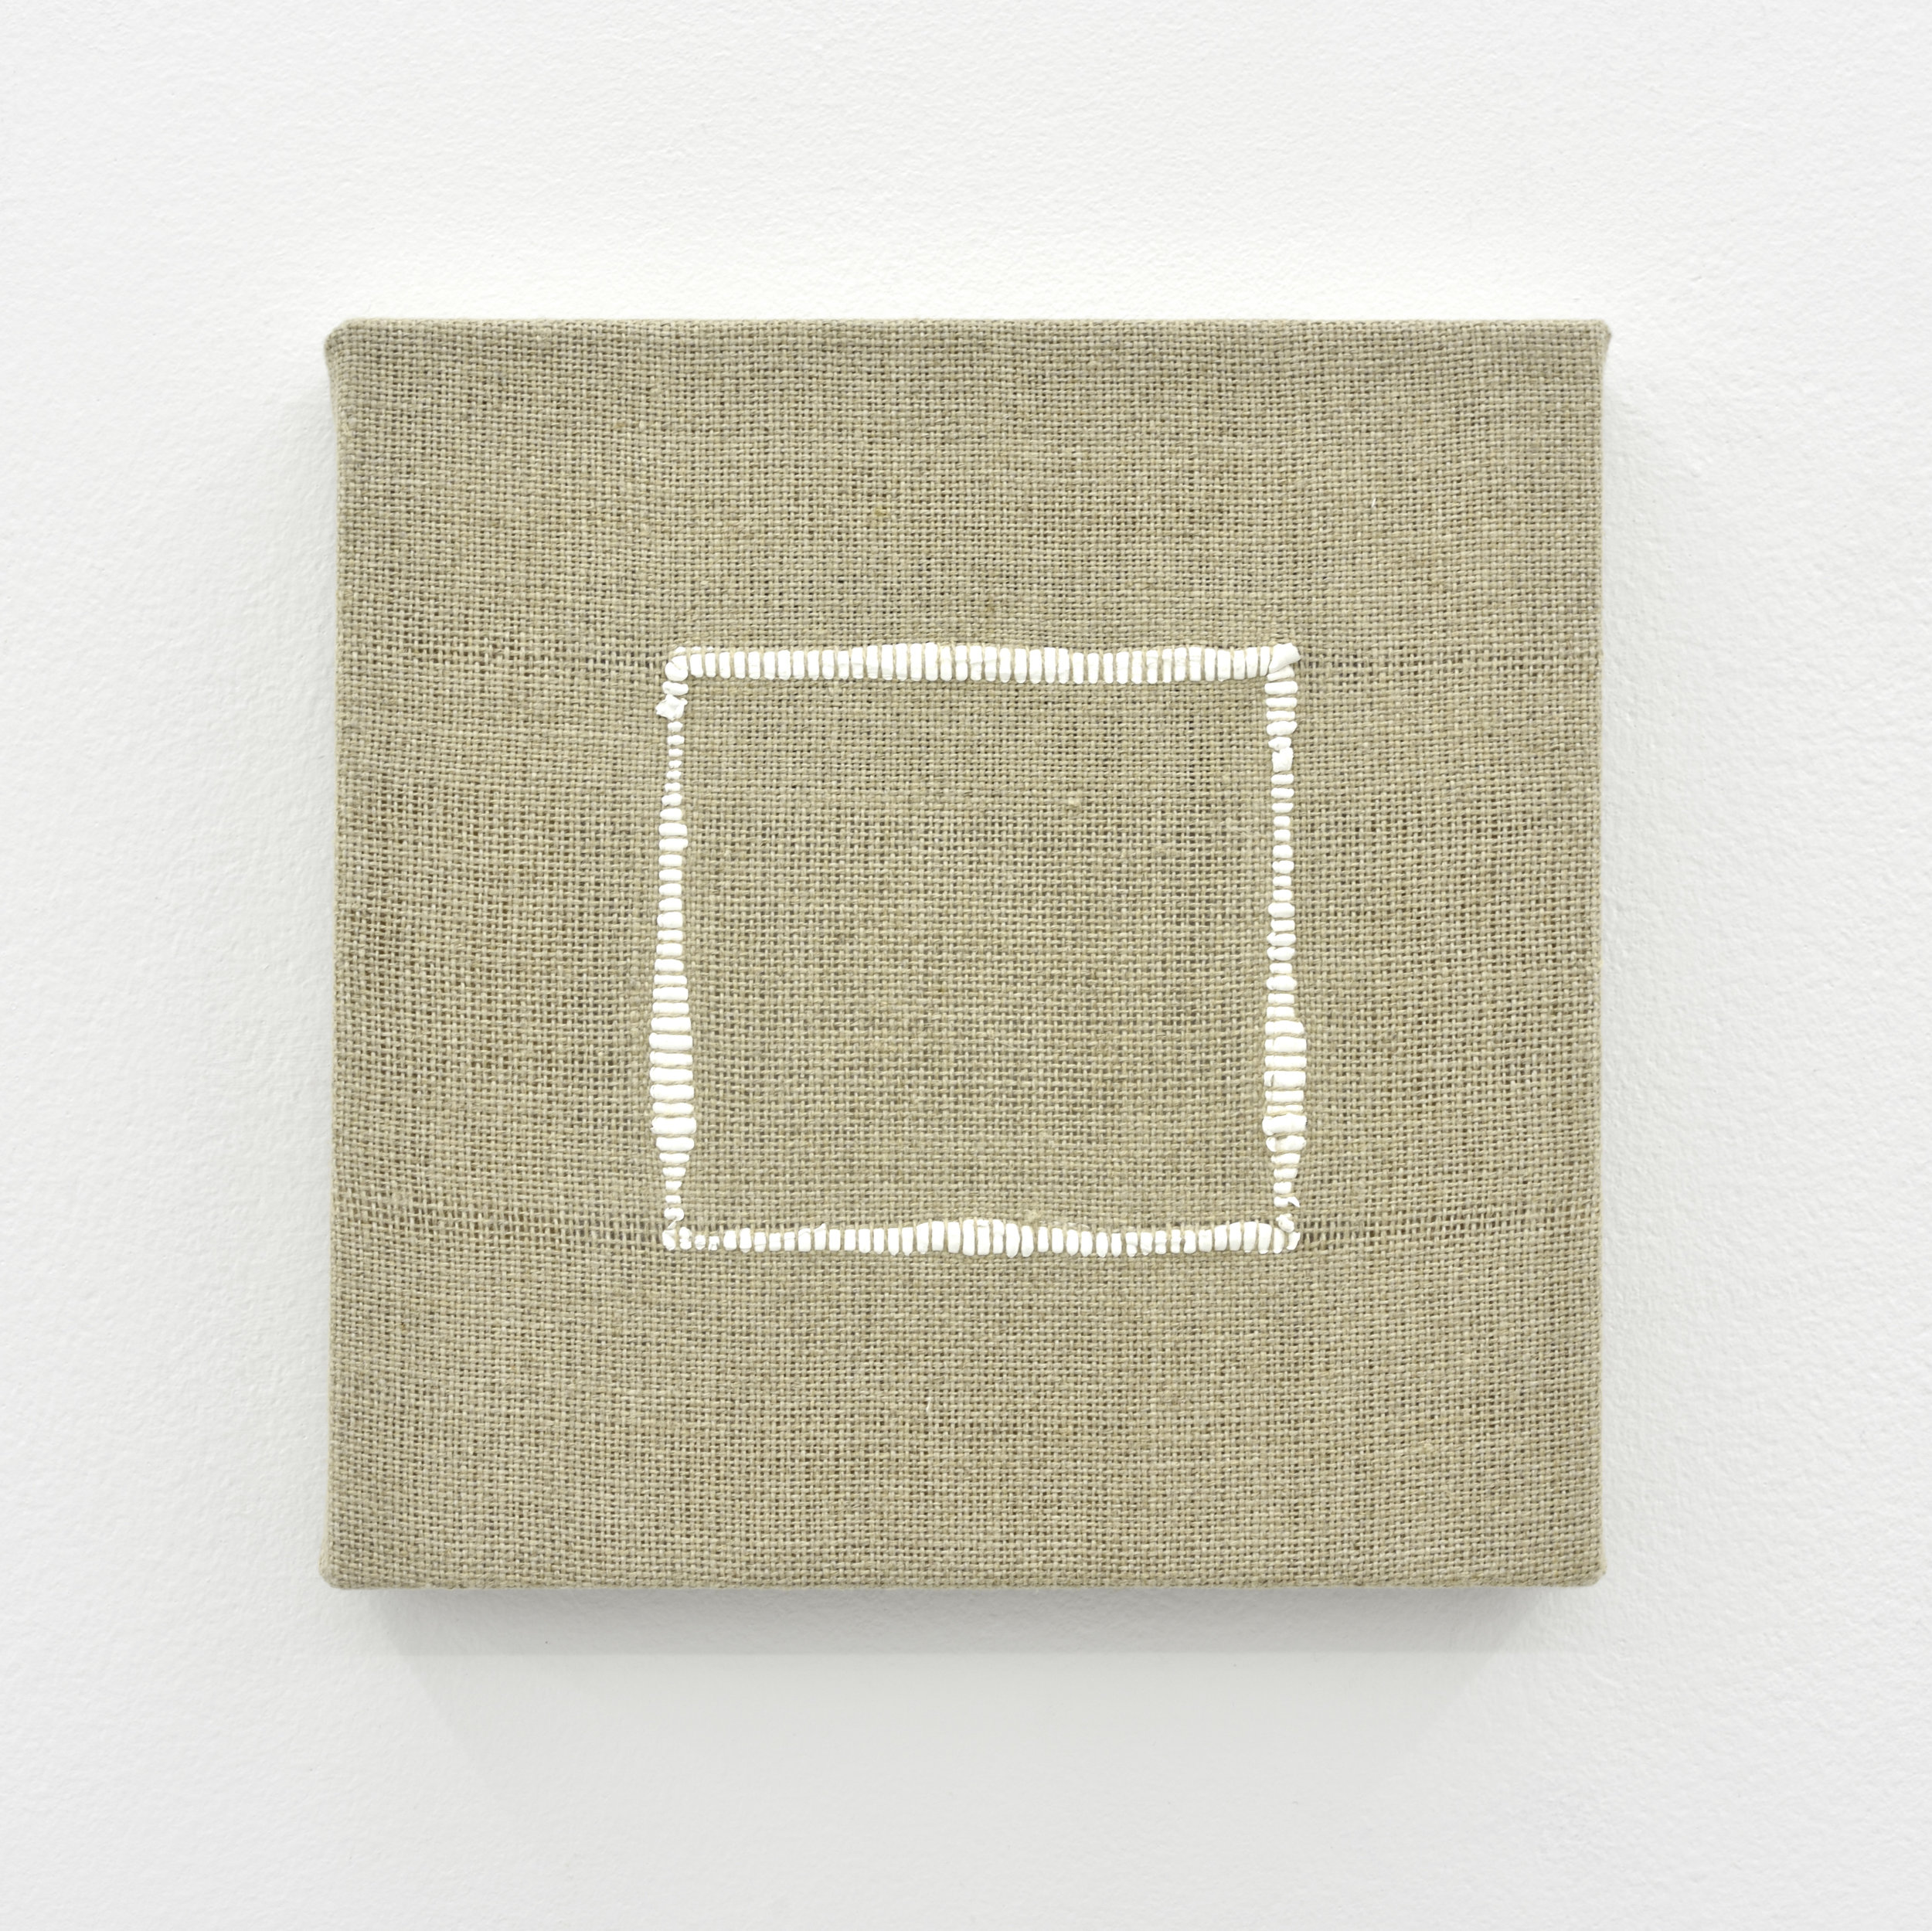 Composition for Woven Square Outline (White), 2017 acrylic paint woven through linen 20 x 20 x 2 cm - 7 7/8 x 7 7/8 x 0 3/4 inches